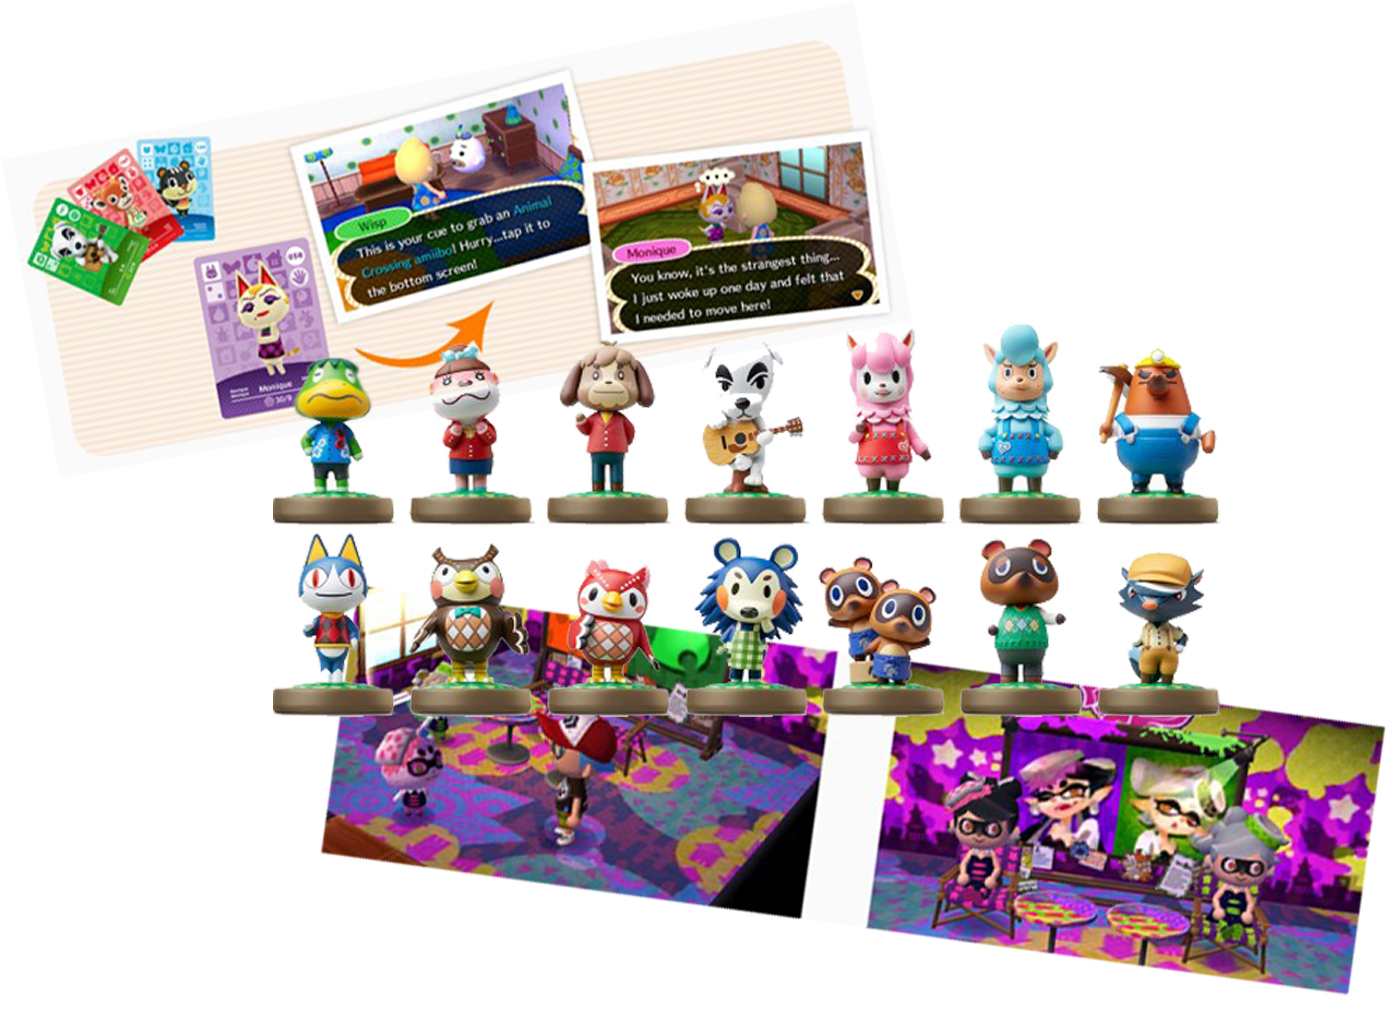 You'll soon be able to summon villagers to your town using ...